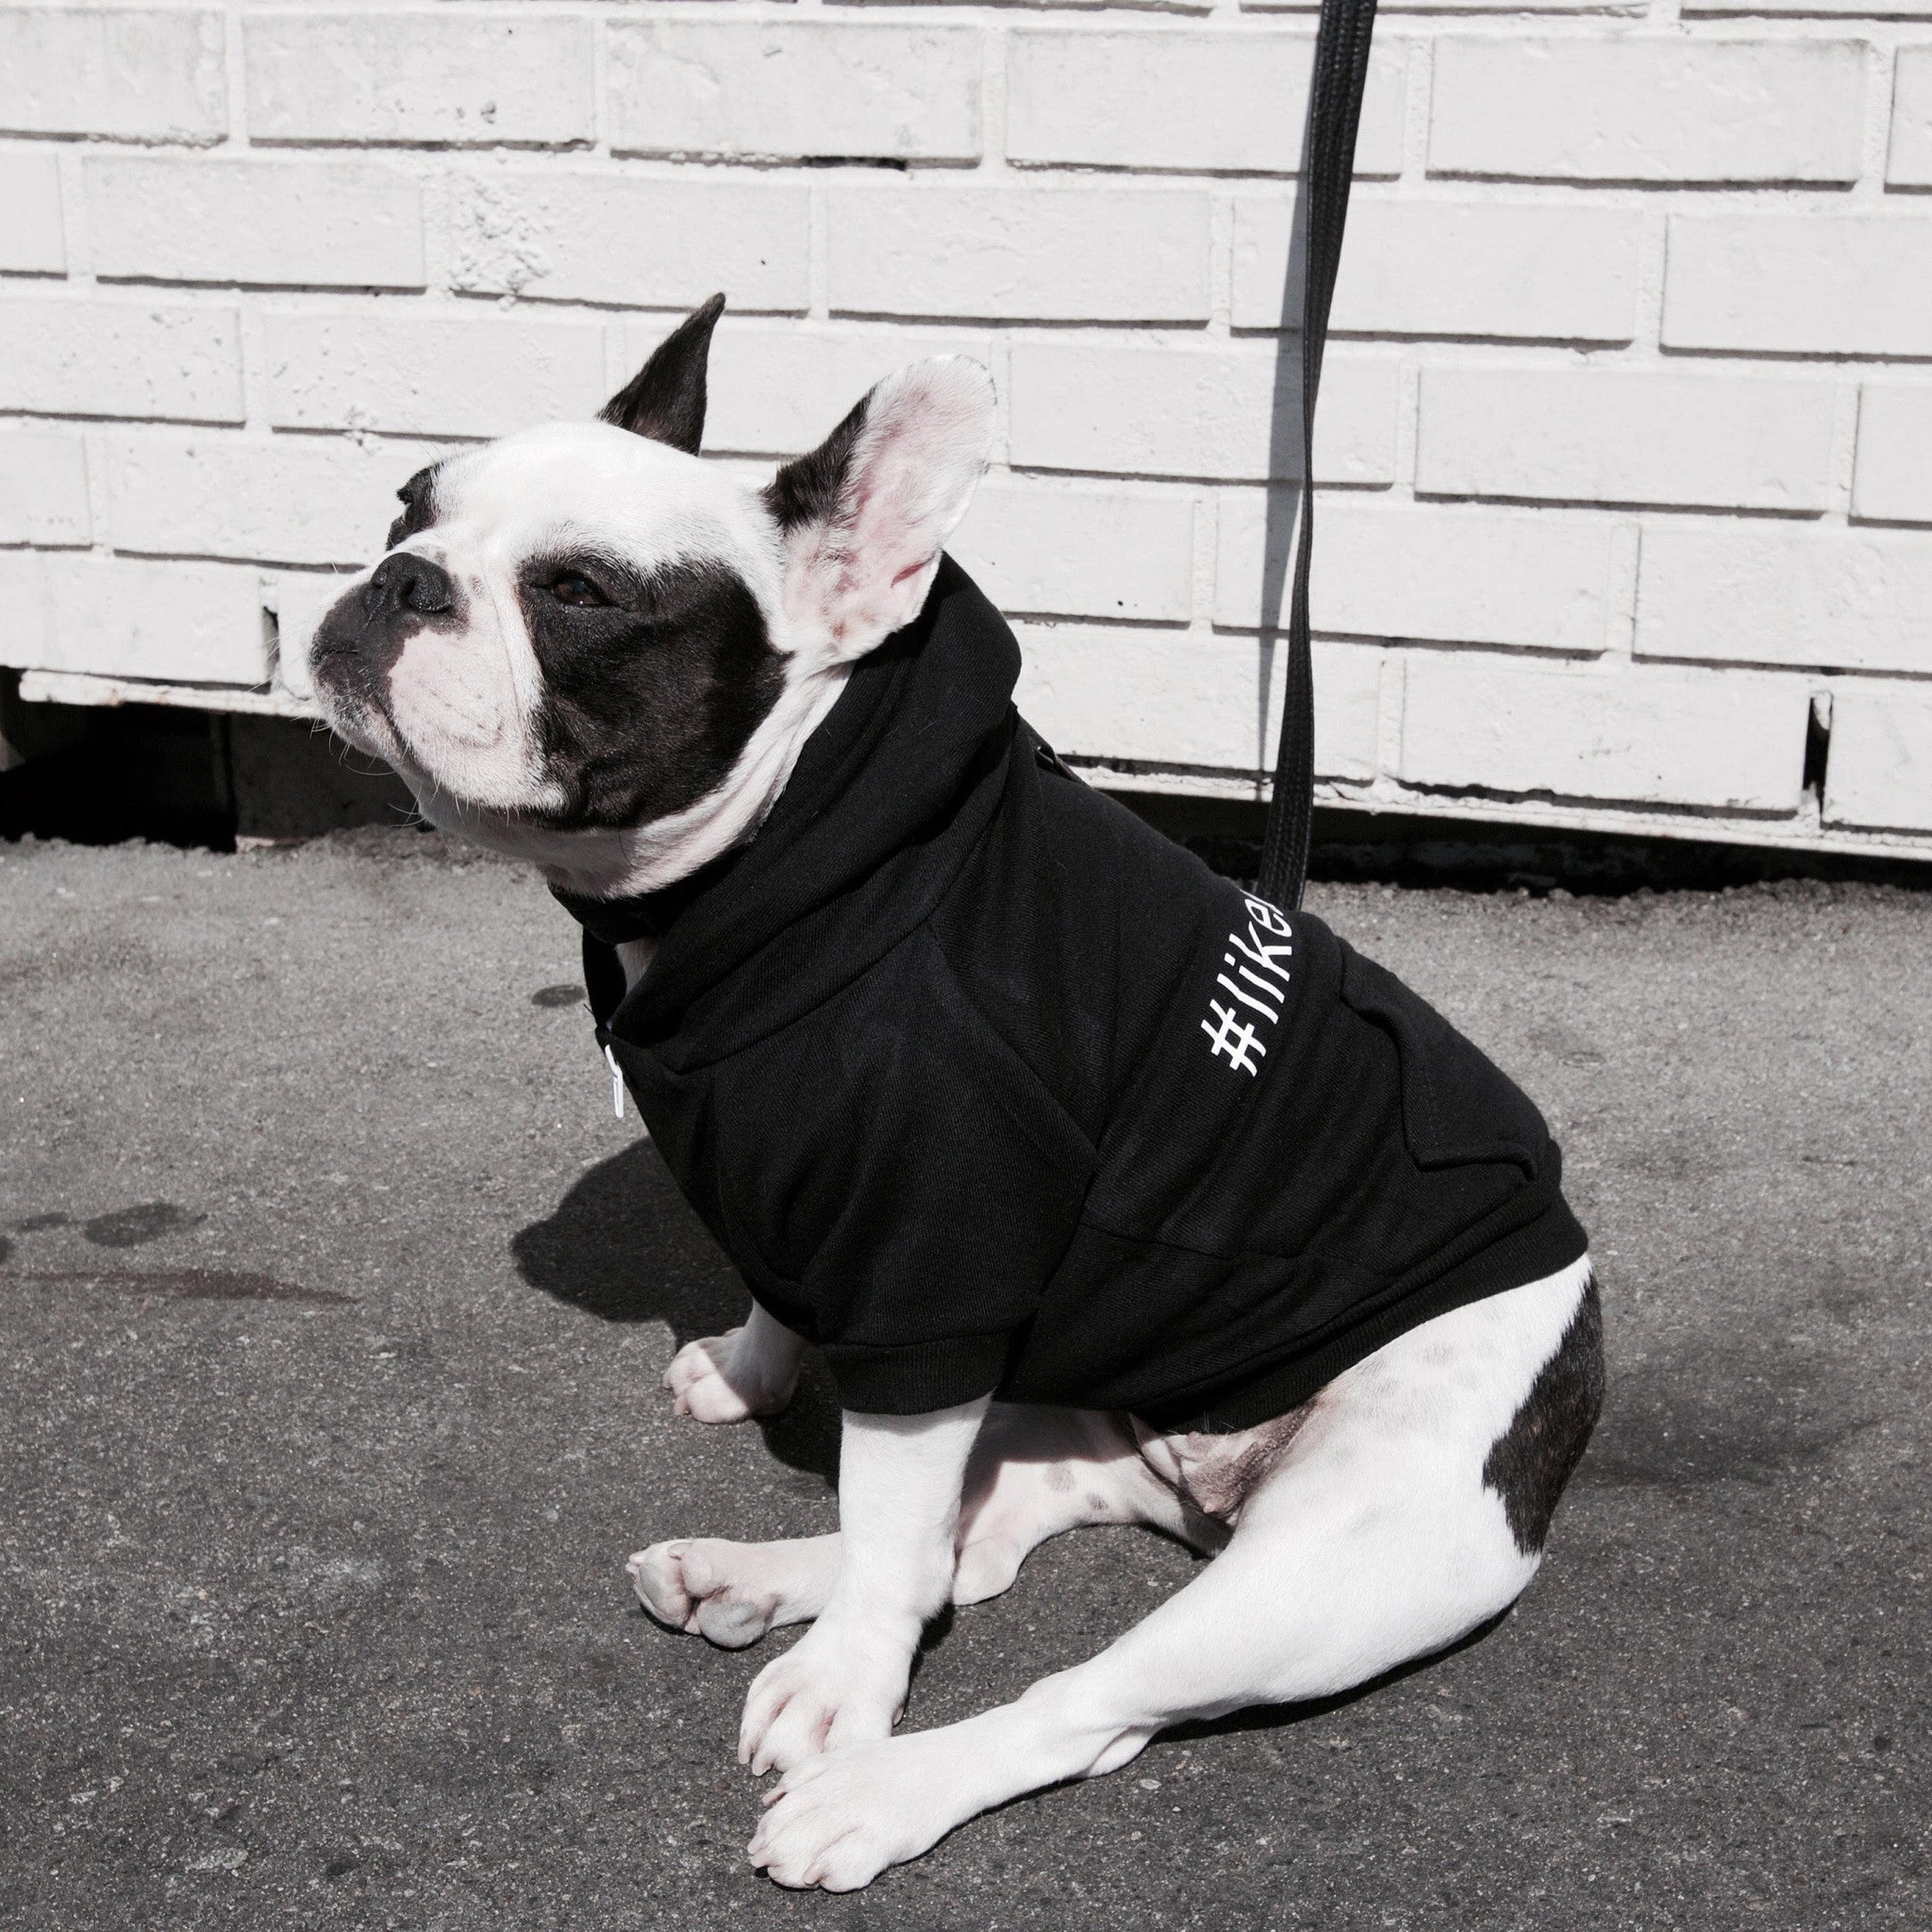 iL CANE - Sass Hoodie 1st Gen. - #LIKEABOSS